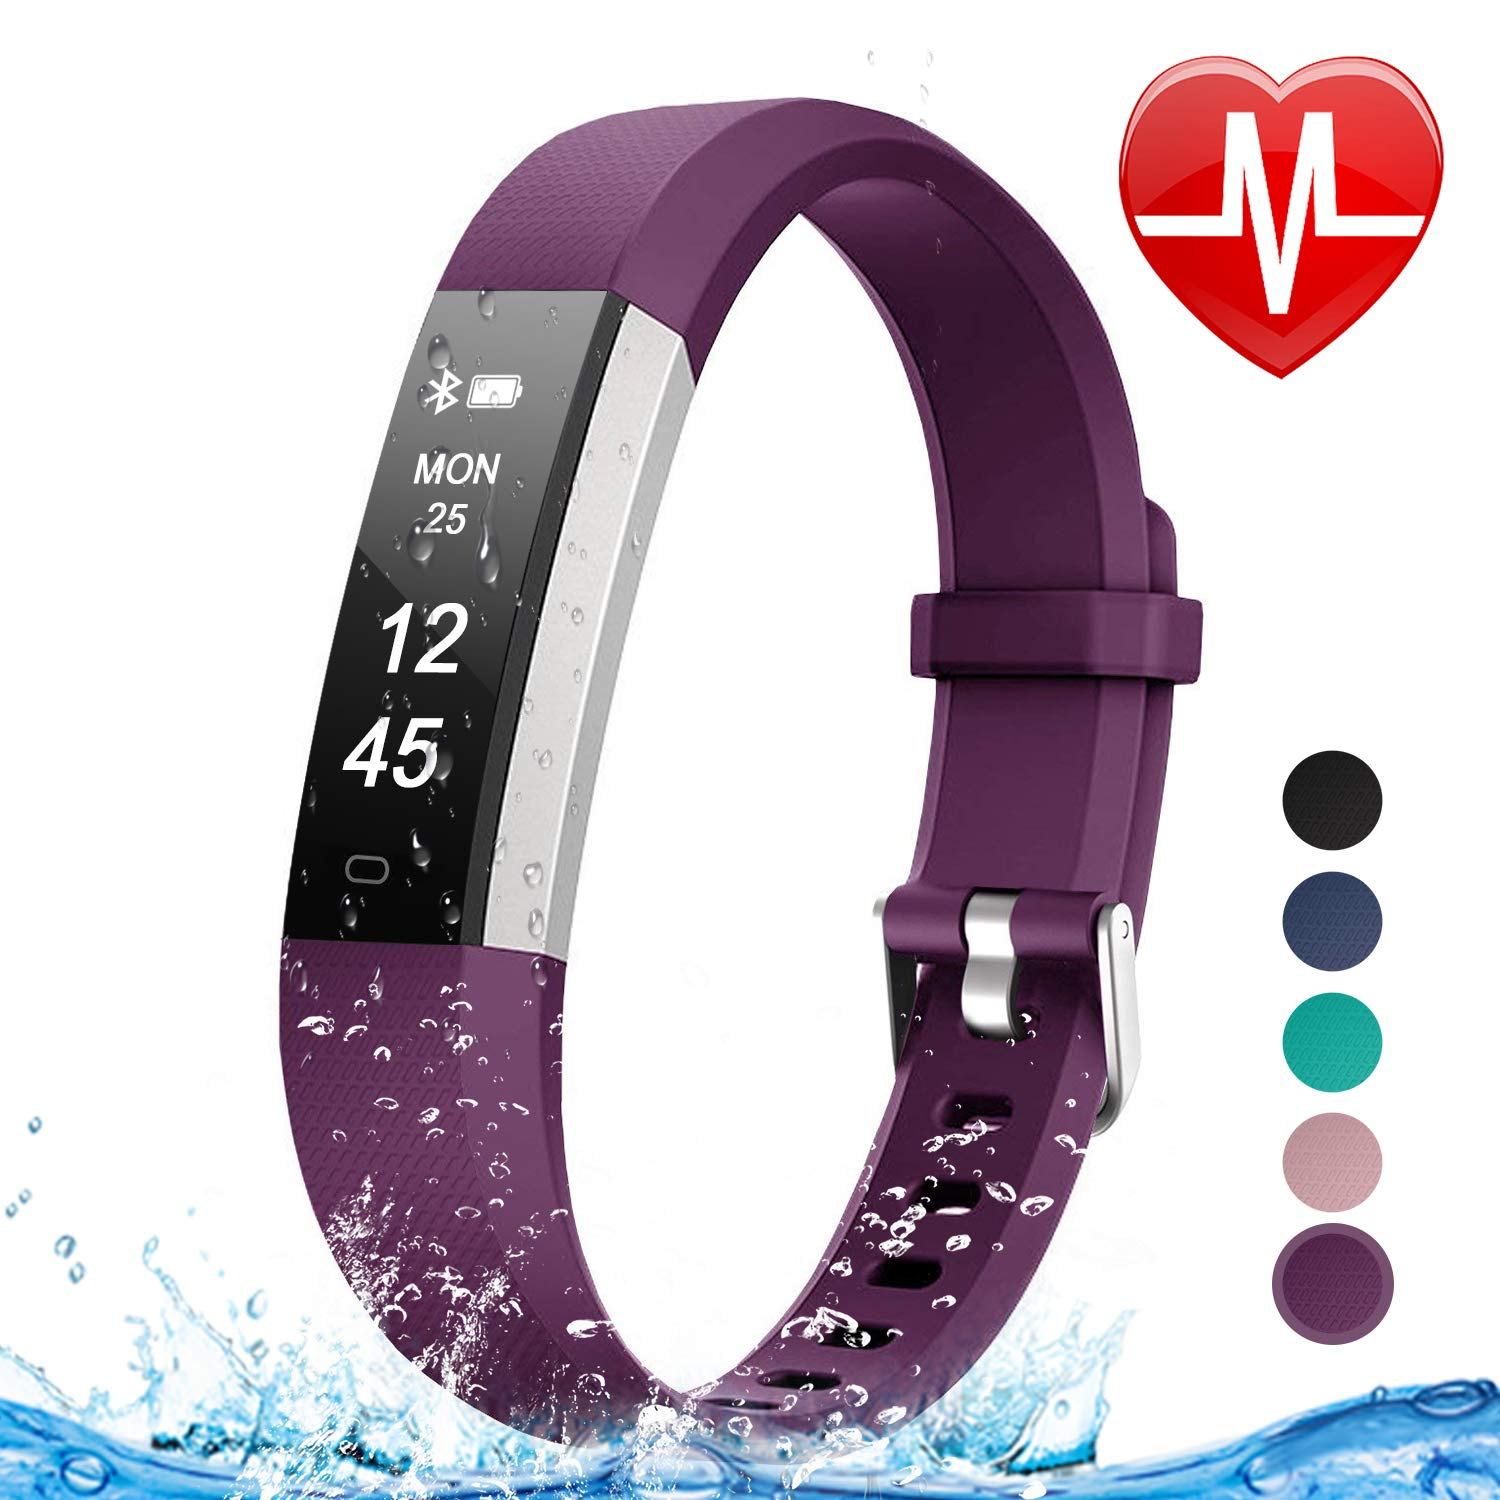 Letsfit Fitness Tracker HR, Heart Rate Monitor Watch, IP67 Waterproof Pedometer Watch, Sleep Monitor, Step Counter Tracker, Slim Activity Tracker for Women Men Kids